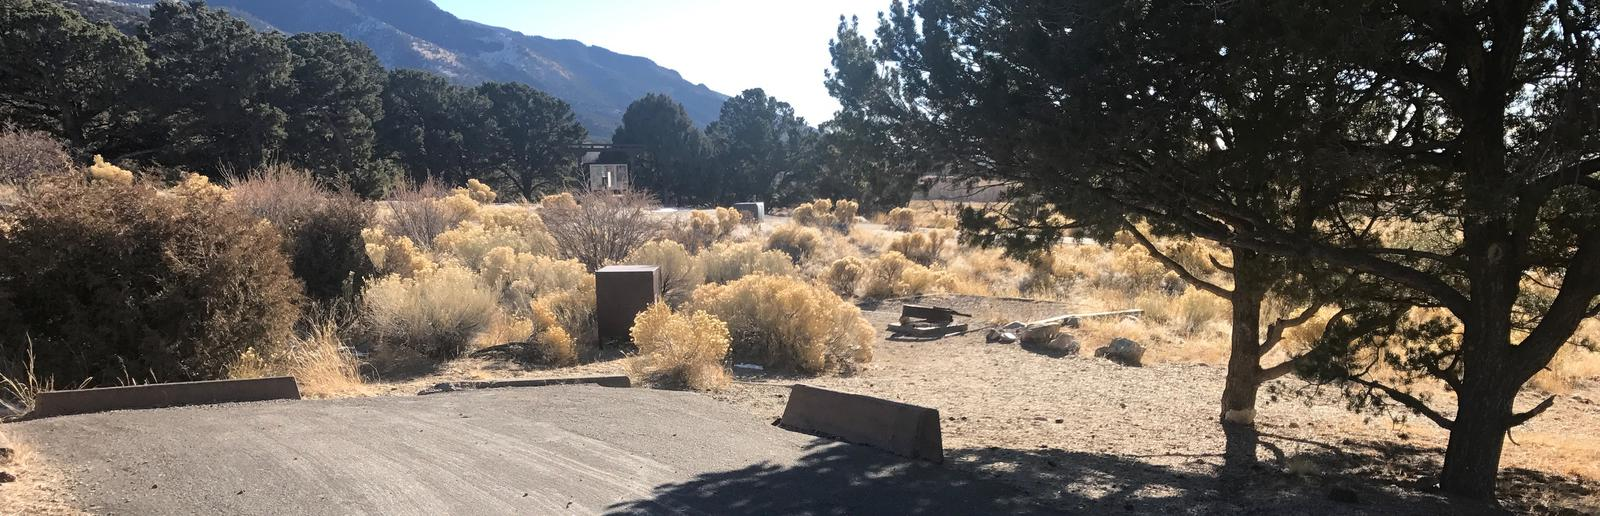 Site #42, Pinon Flats Campground